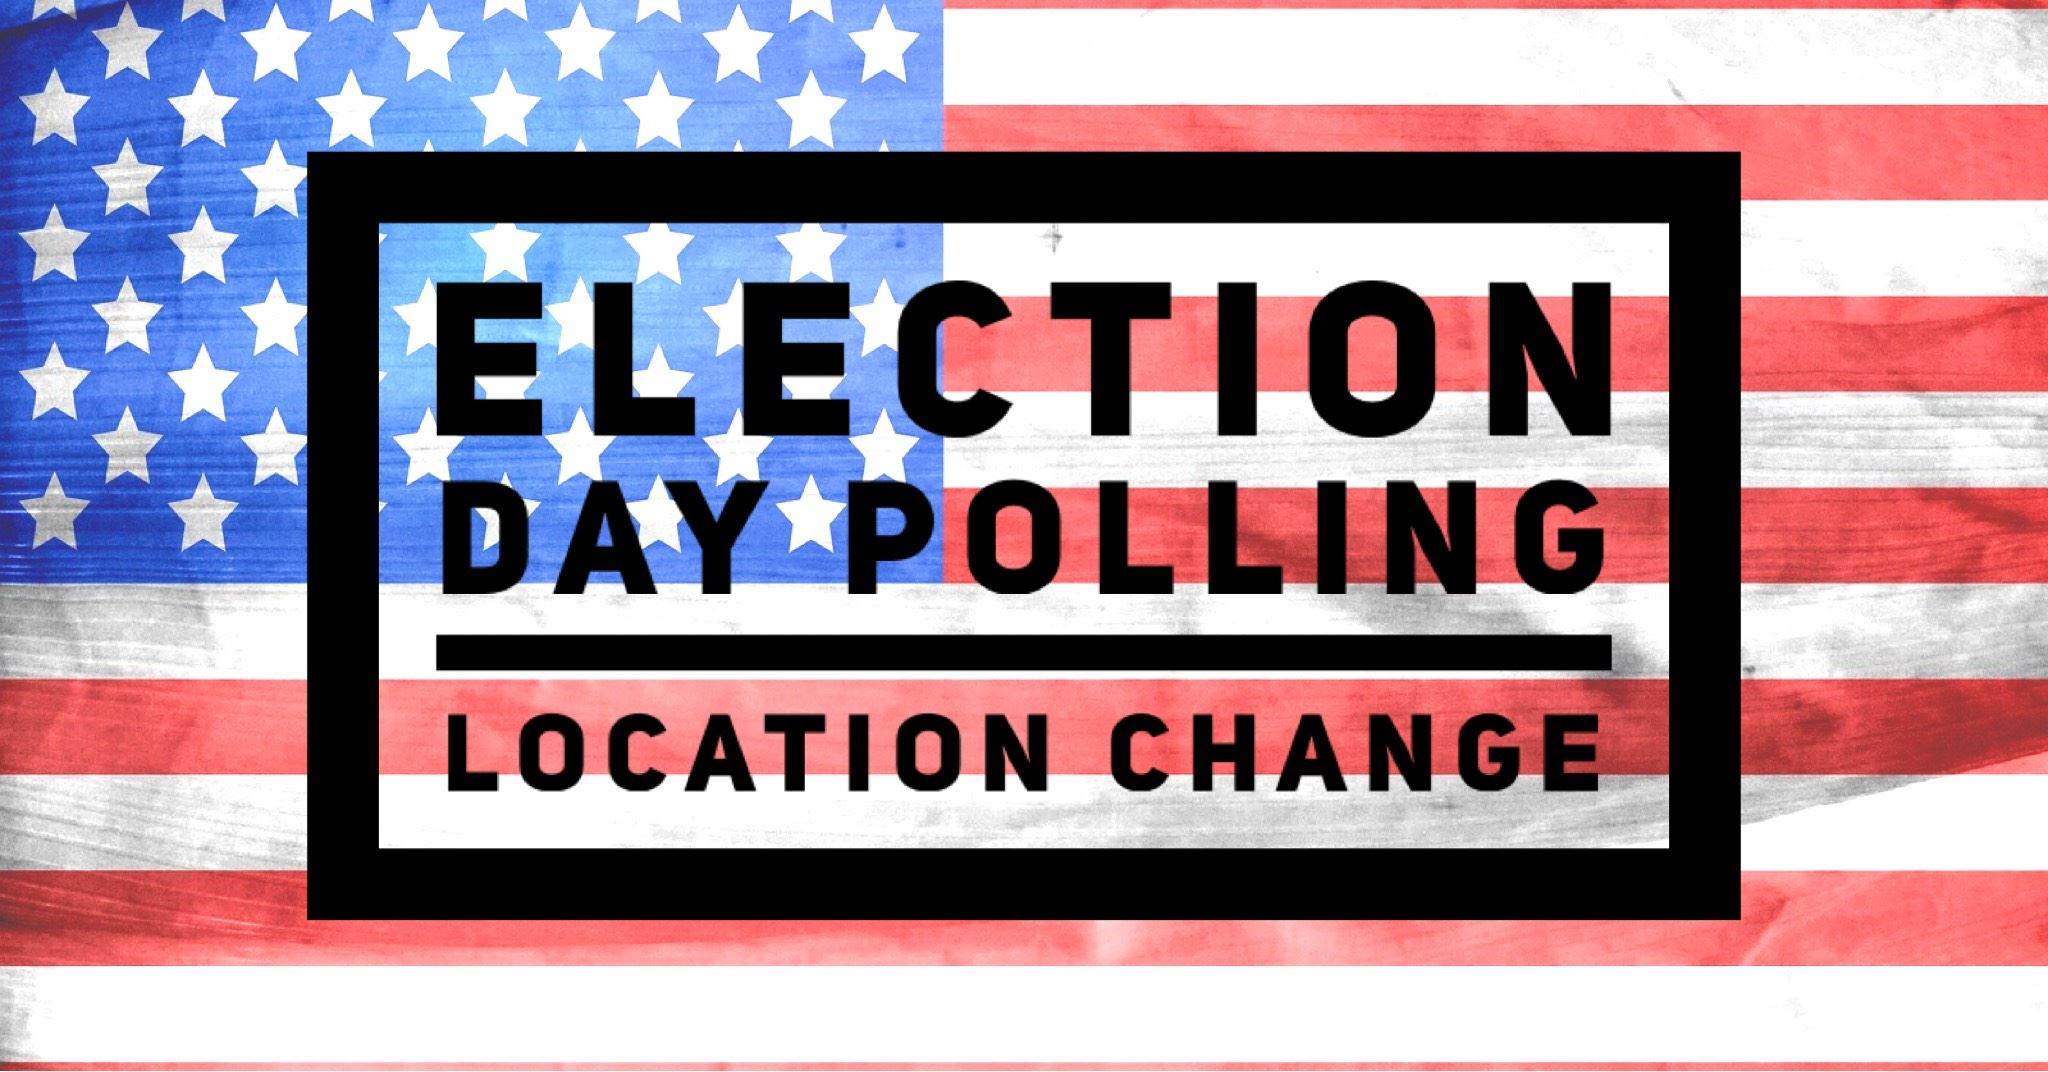 Change in Polling Location